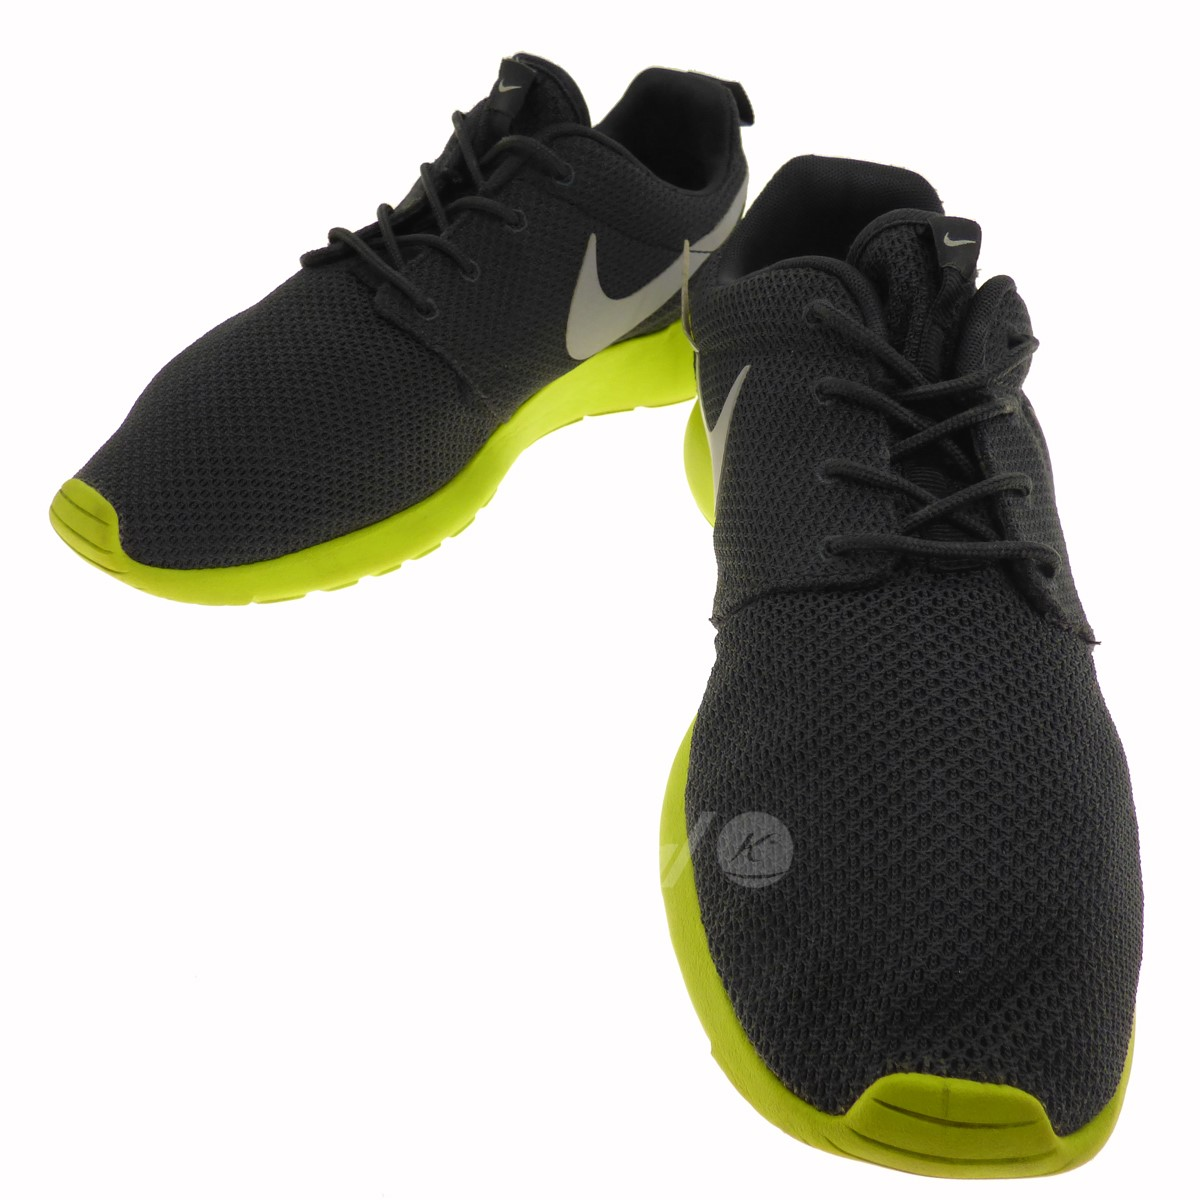 finest selection dd097 59d5f ... hot nike roshe run sneakers 511881 003 gray x yellow size 28. 5cm nike  325b6